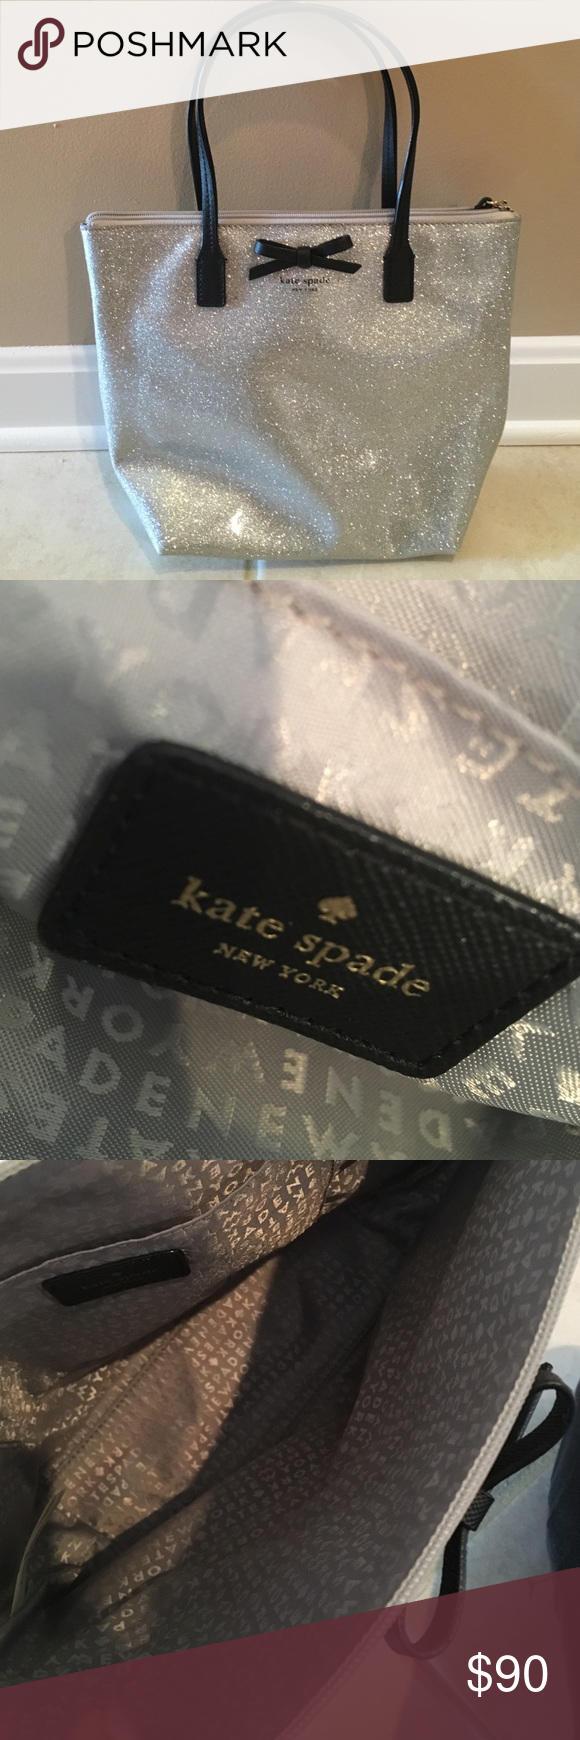 Kate Spade purse Kate Spade- Authentic purse- tote. Sparkle- one zip black leather handle. Used once. Perfect condition. kate spade Bags Totes